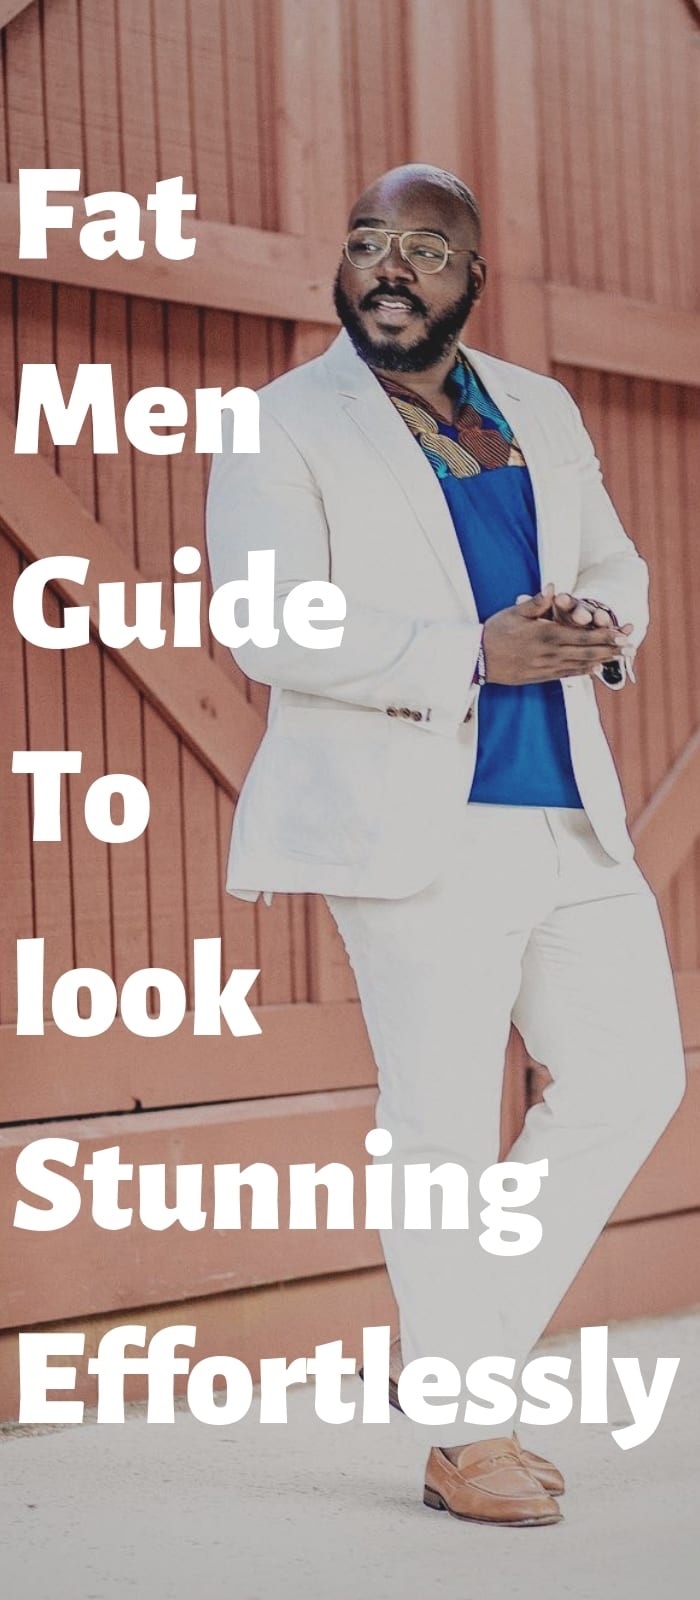 Fat Men Guide To look Stunning Effortlessly